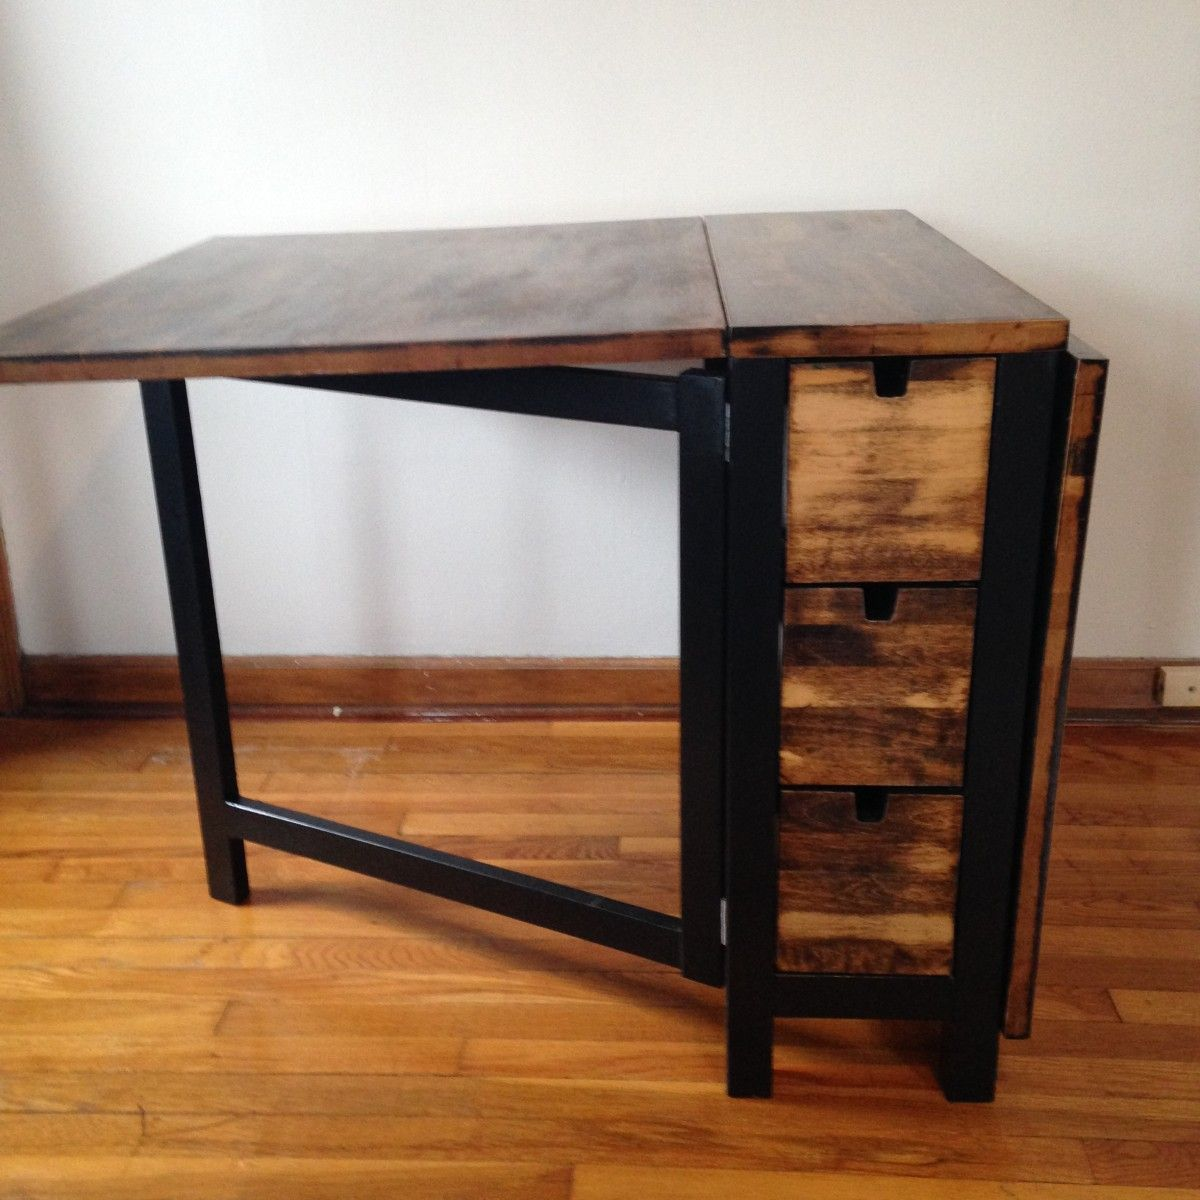 IKEA Norden Gateleg Table With Dark Walnut Stain | IKEA Hackers